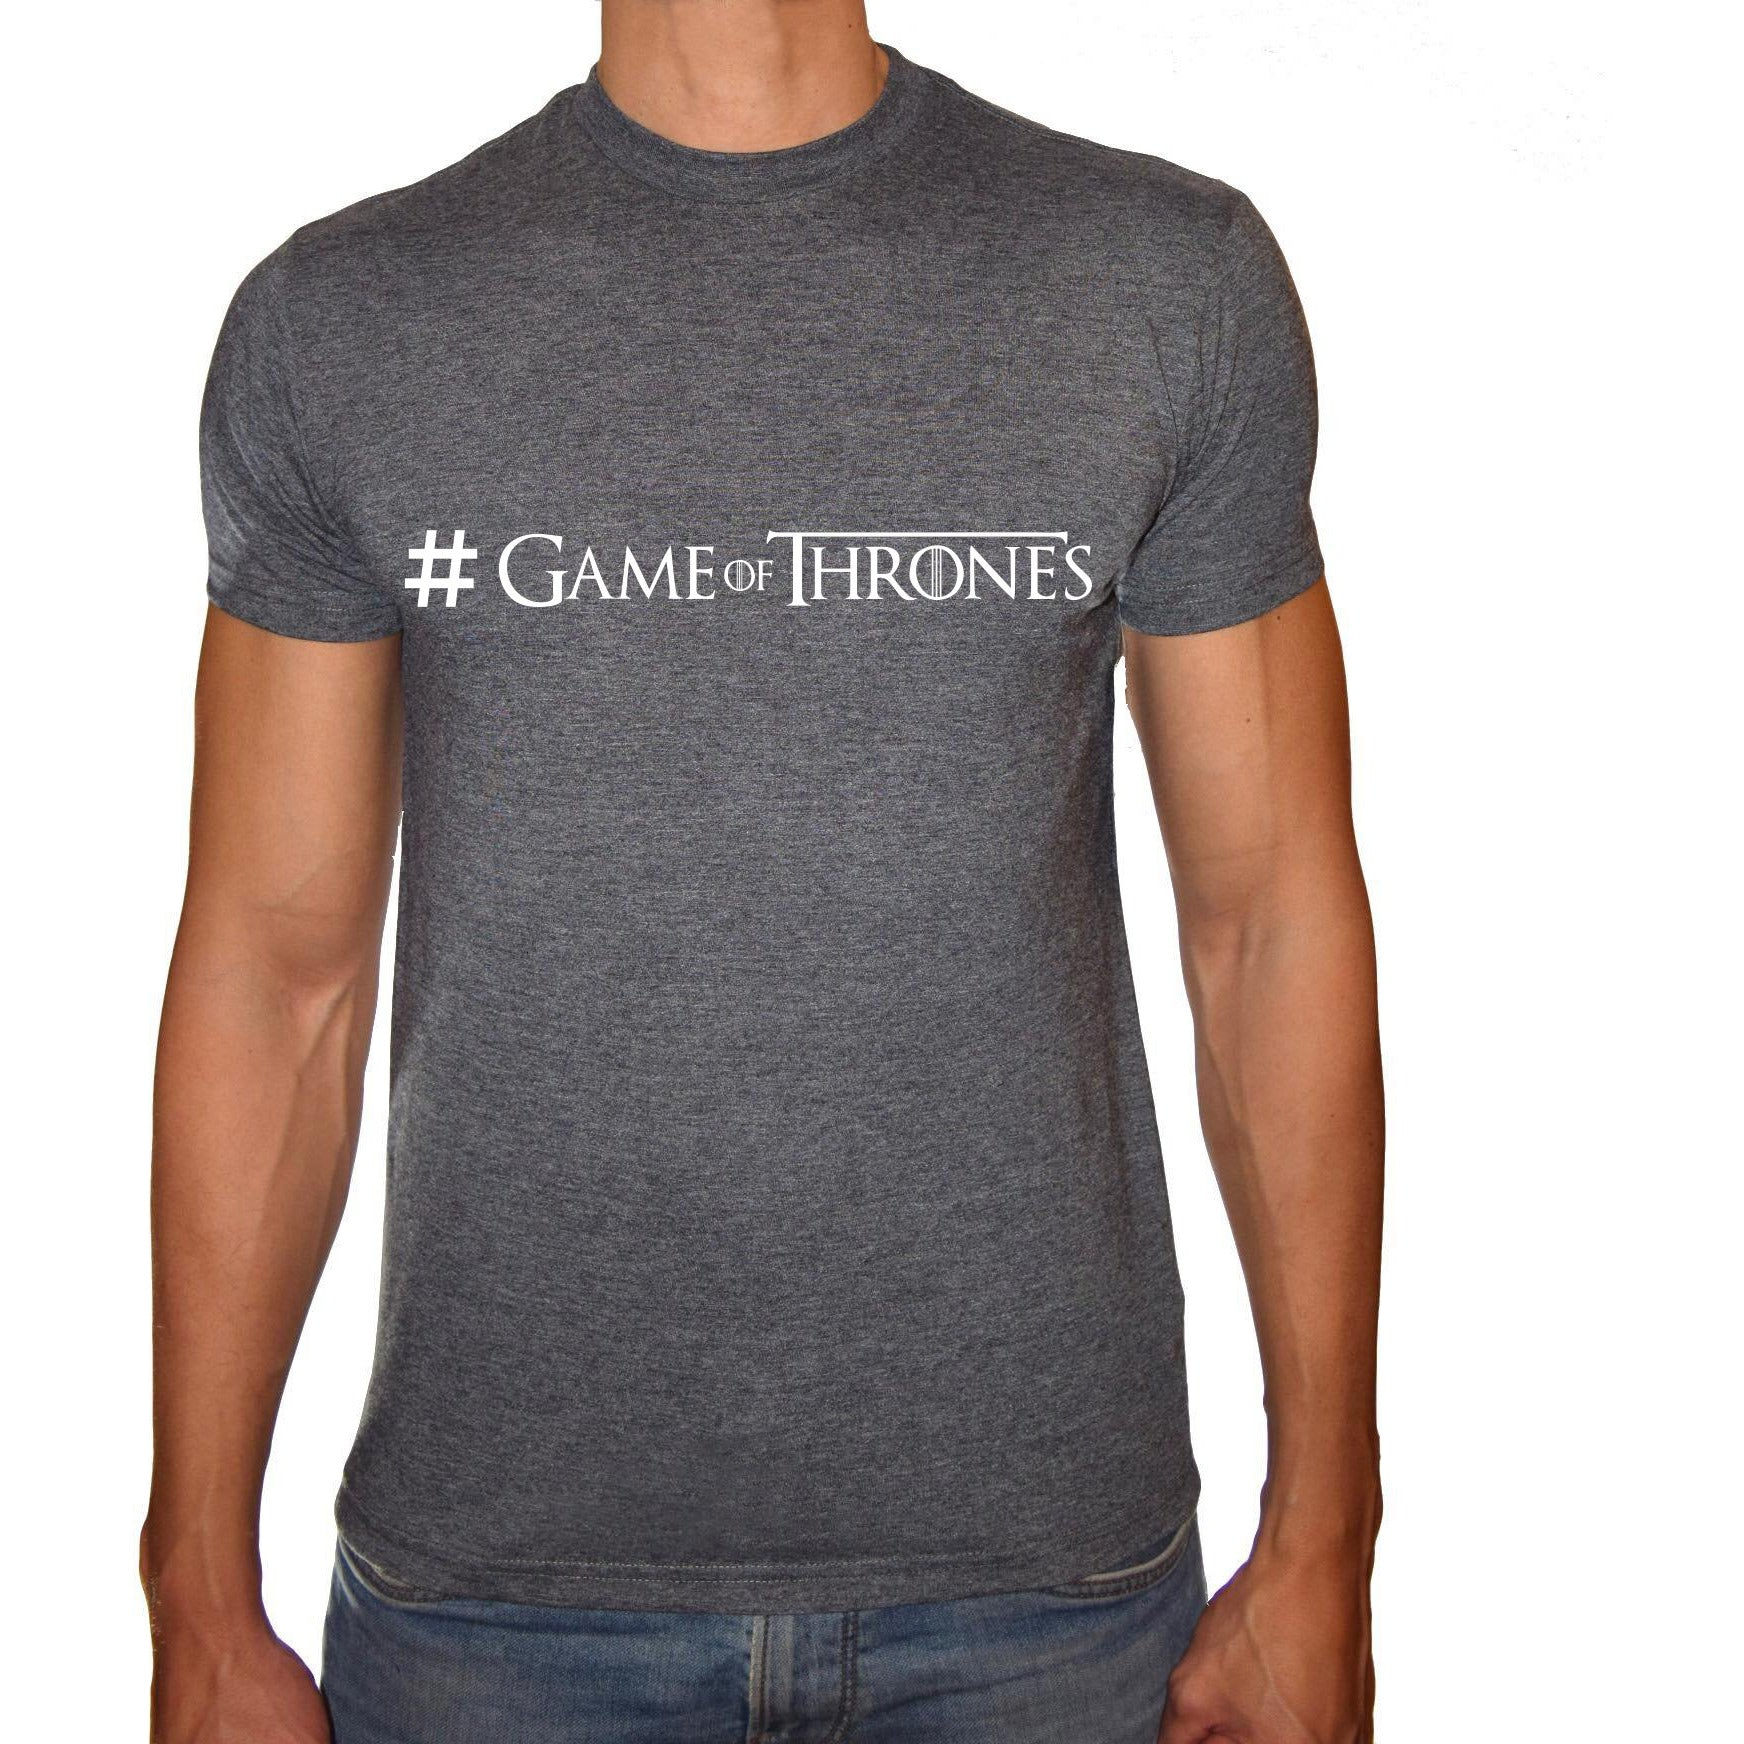 Phoenix CHARCOAL Round Neck Printed T-Shirt Men (#Game of thrones)